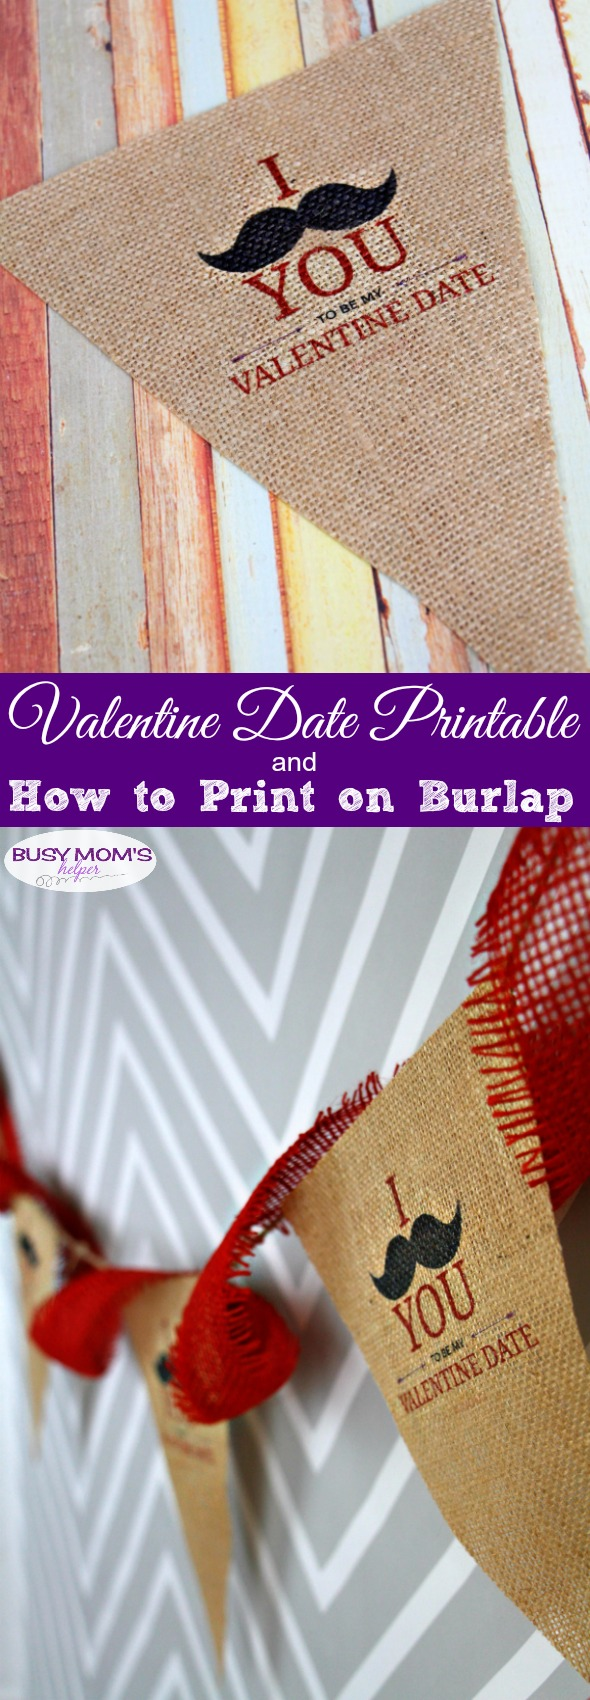 How to Print on Burlap & Valentine Date Invitation Printable #ad #burlapfabric #craft #diy #printable #valentines